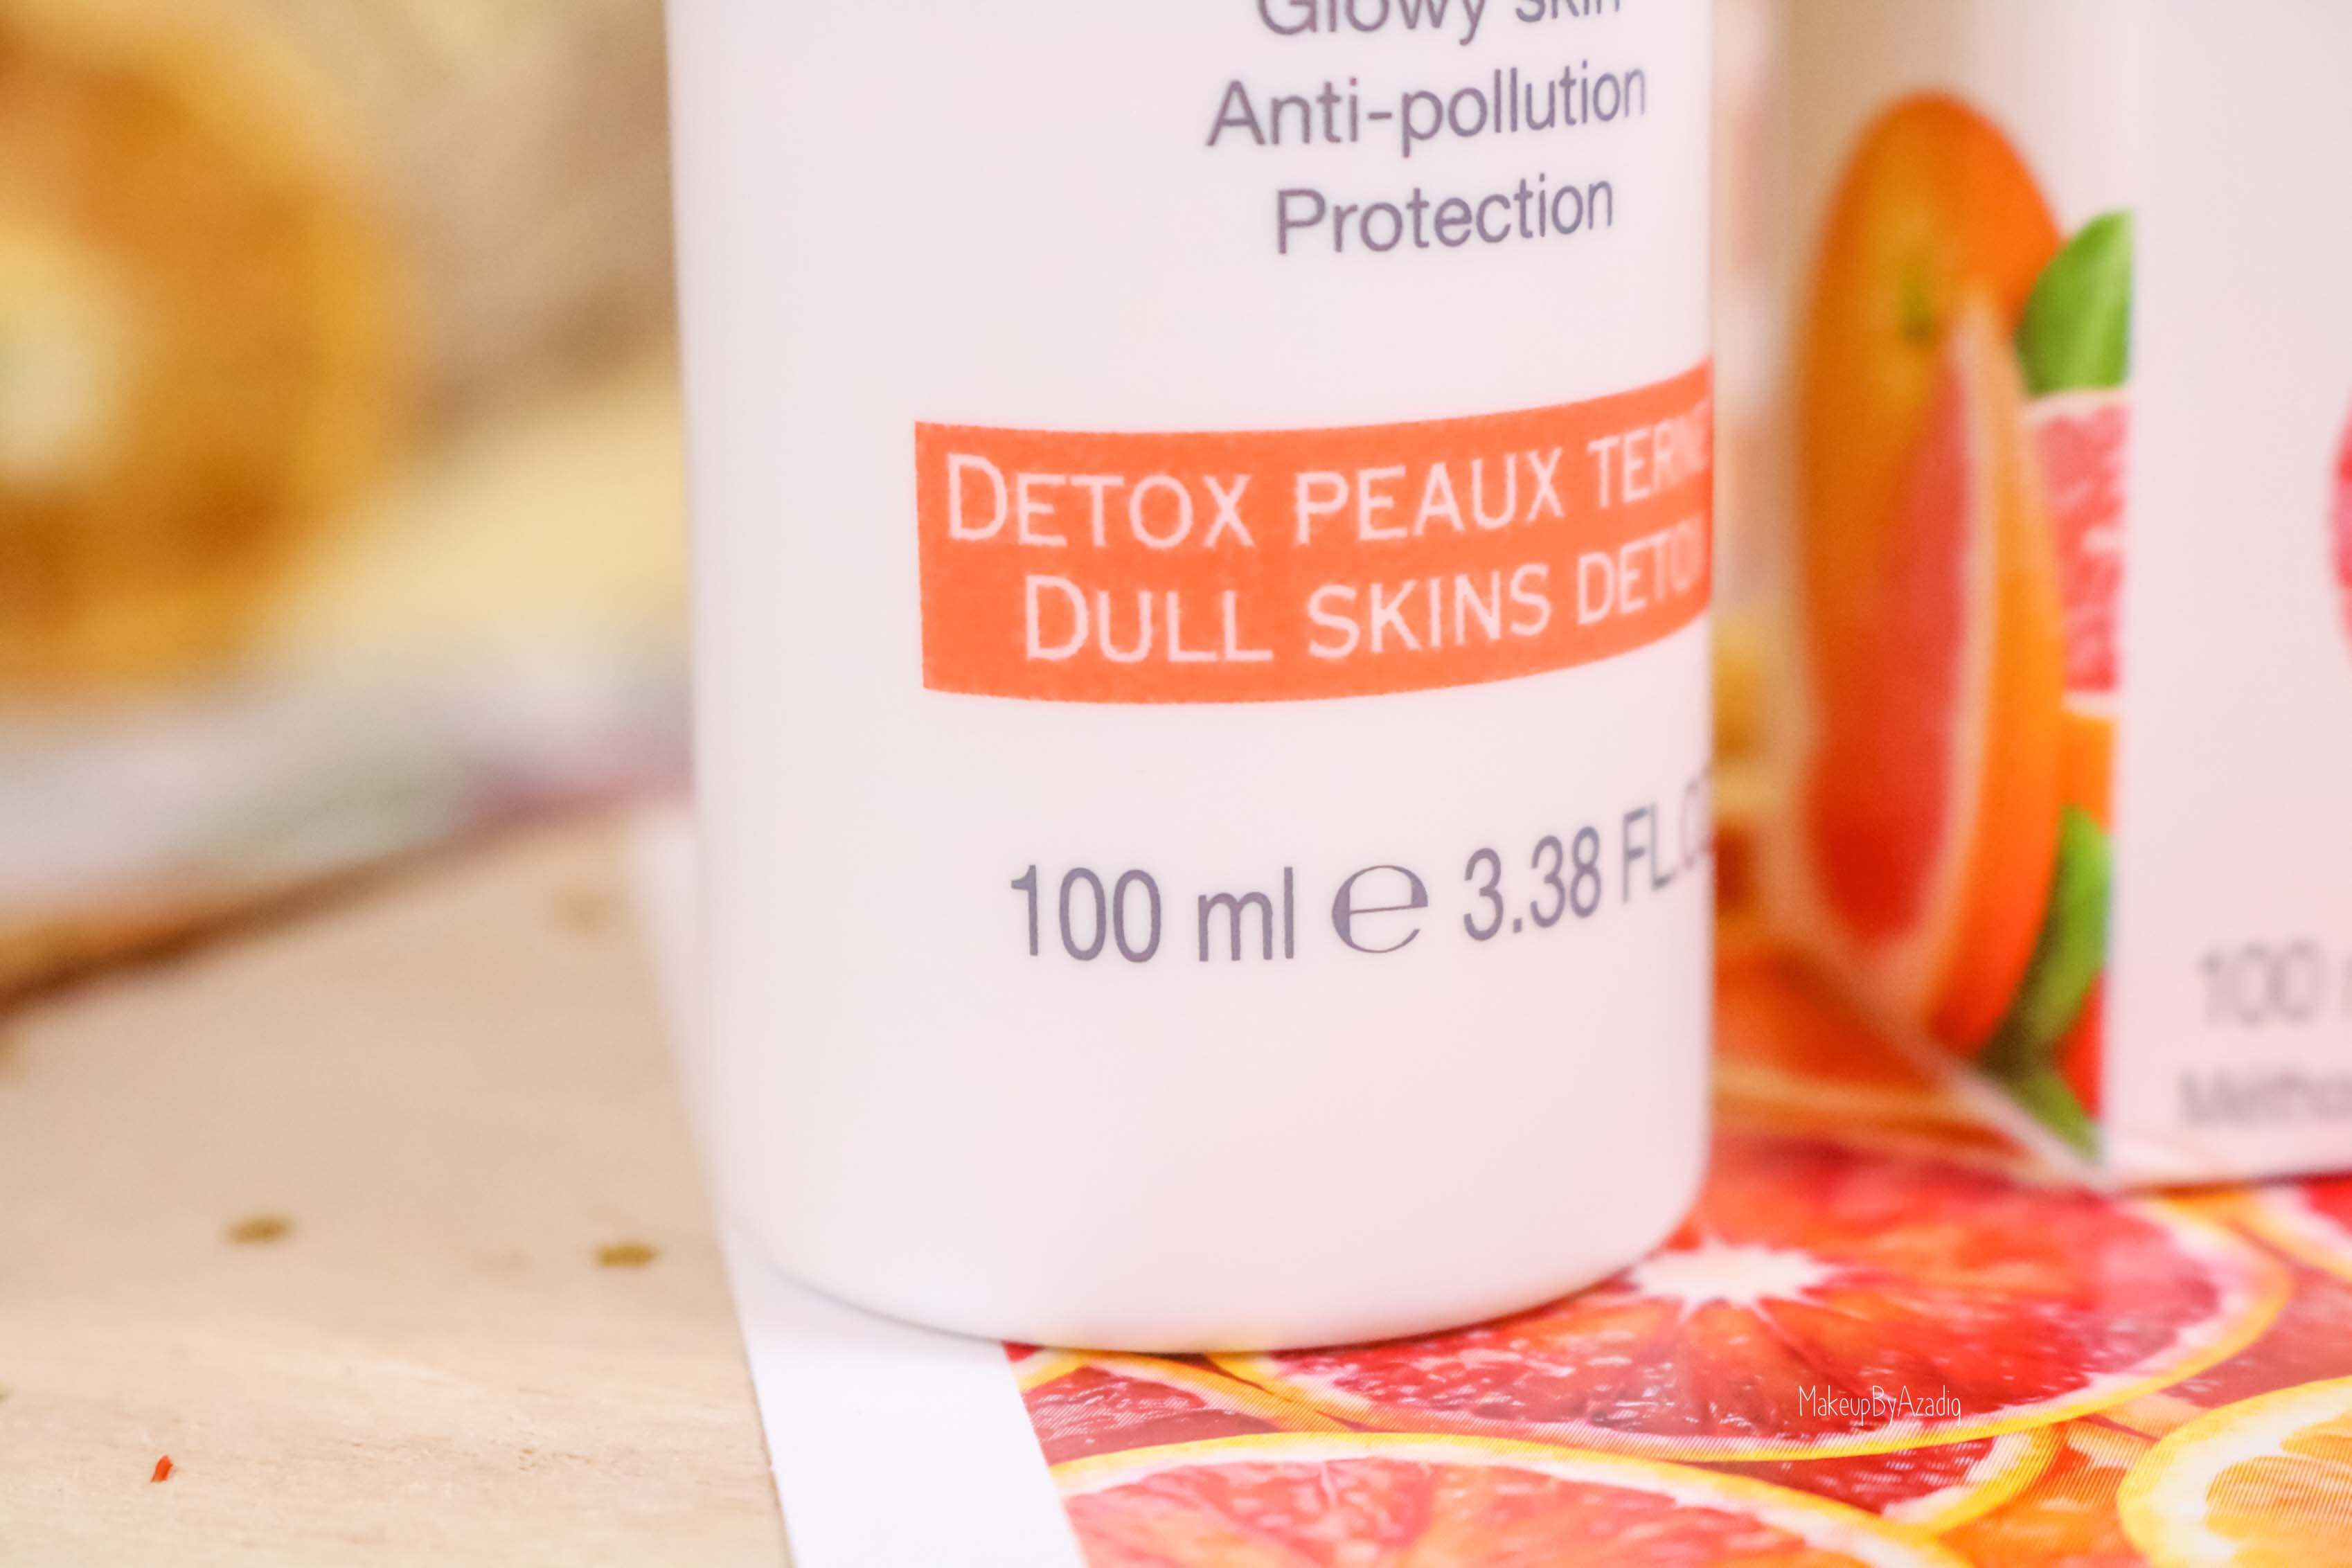 revue-produits-bernard-cassiere-bio-detox-orange-sanguine-masque-paris-institut-concentre-nuit-avis-prix-soin-makeupbyazadig-anti-pollution